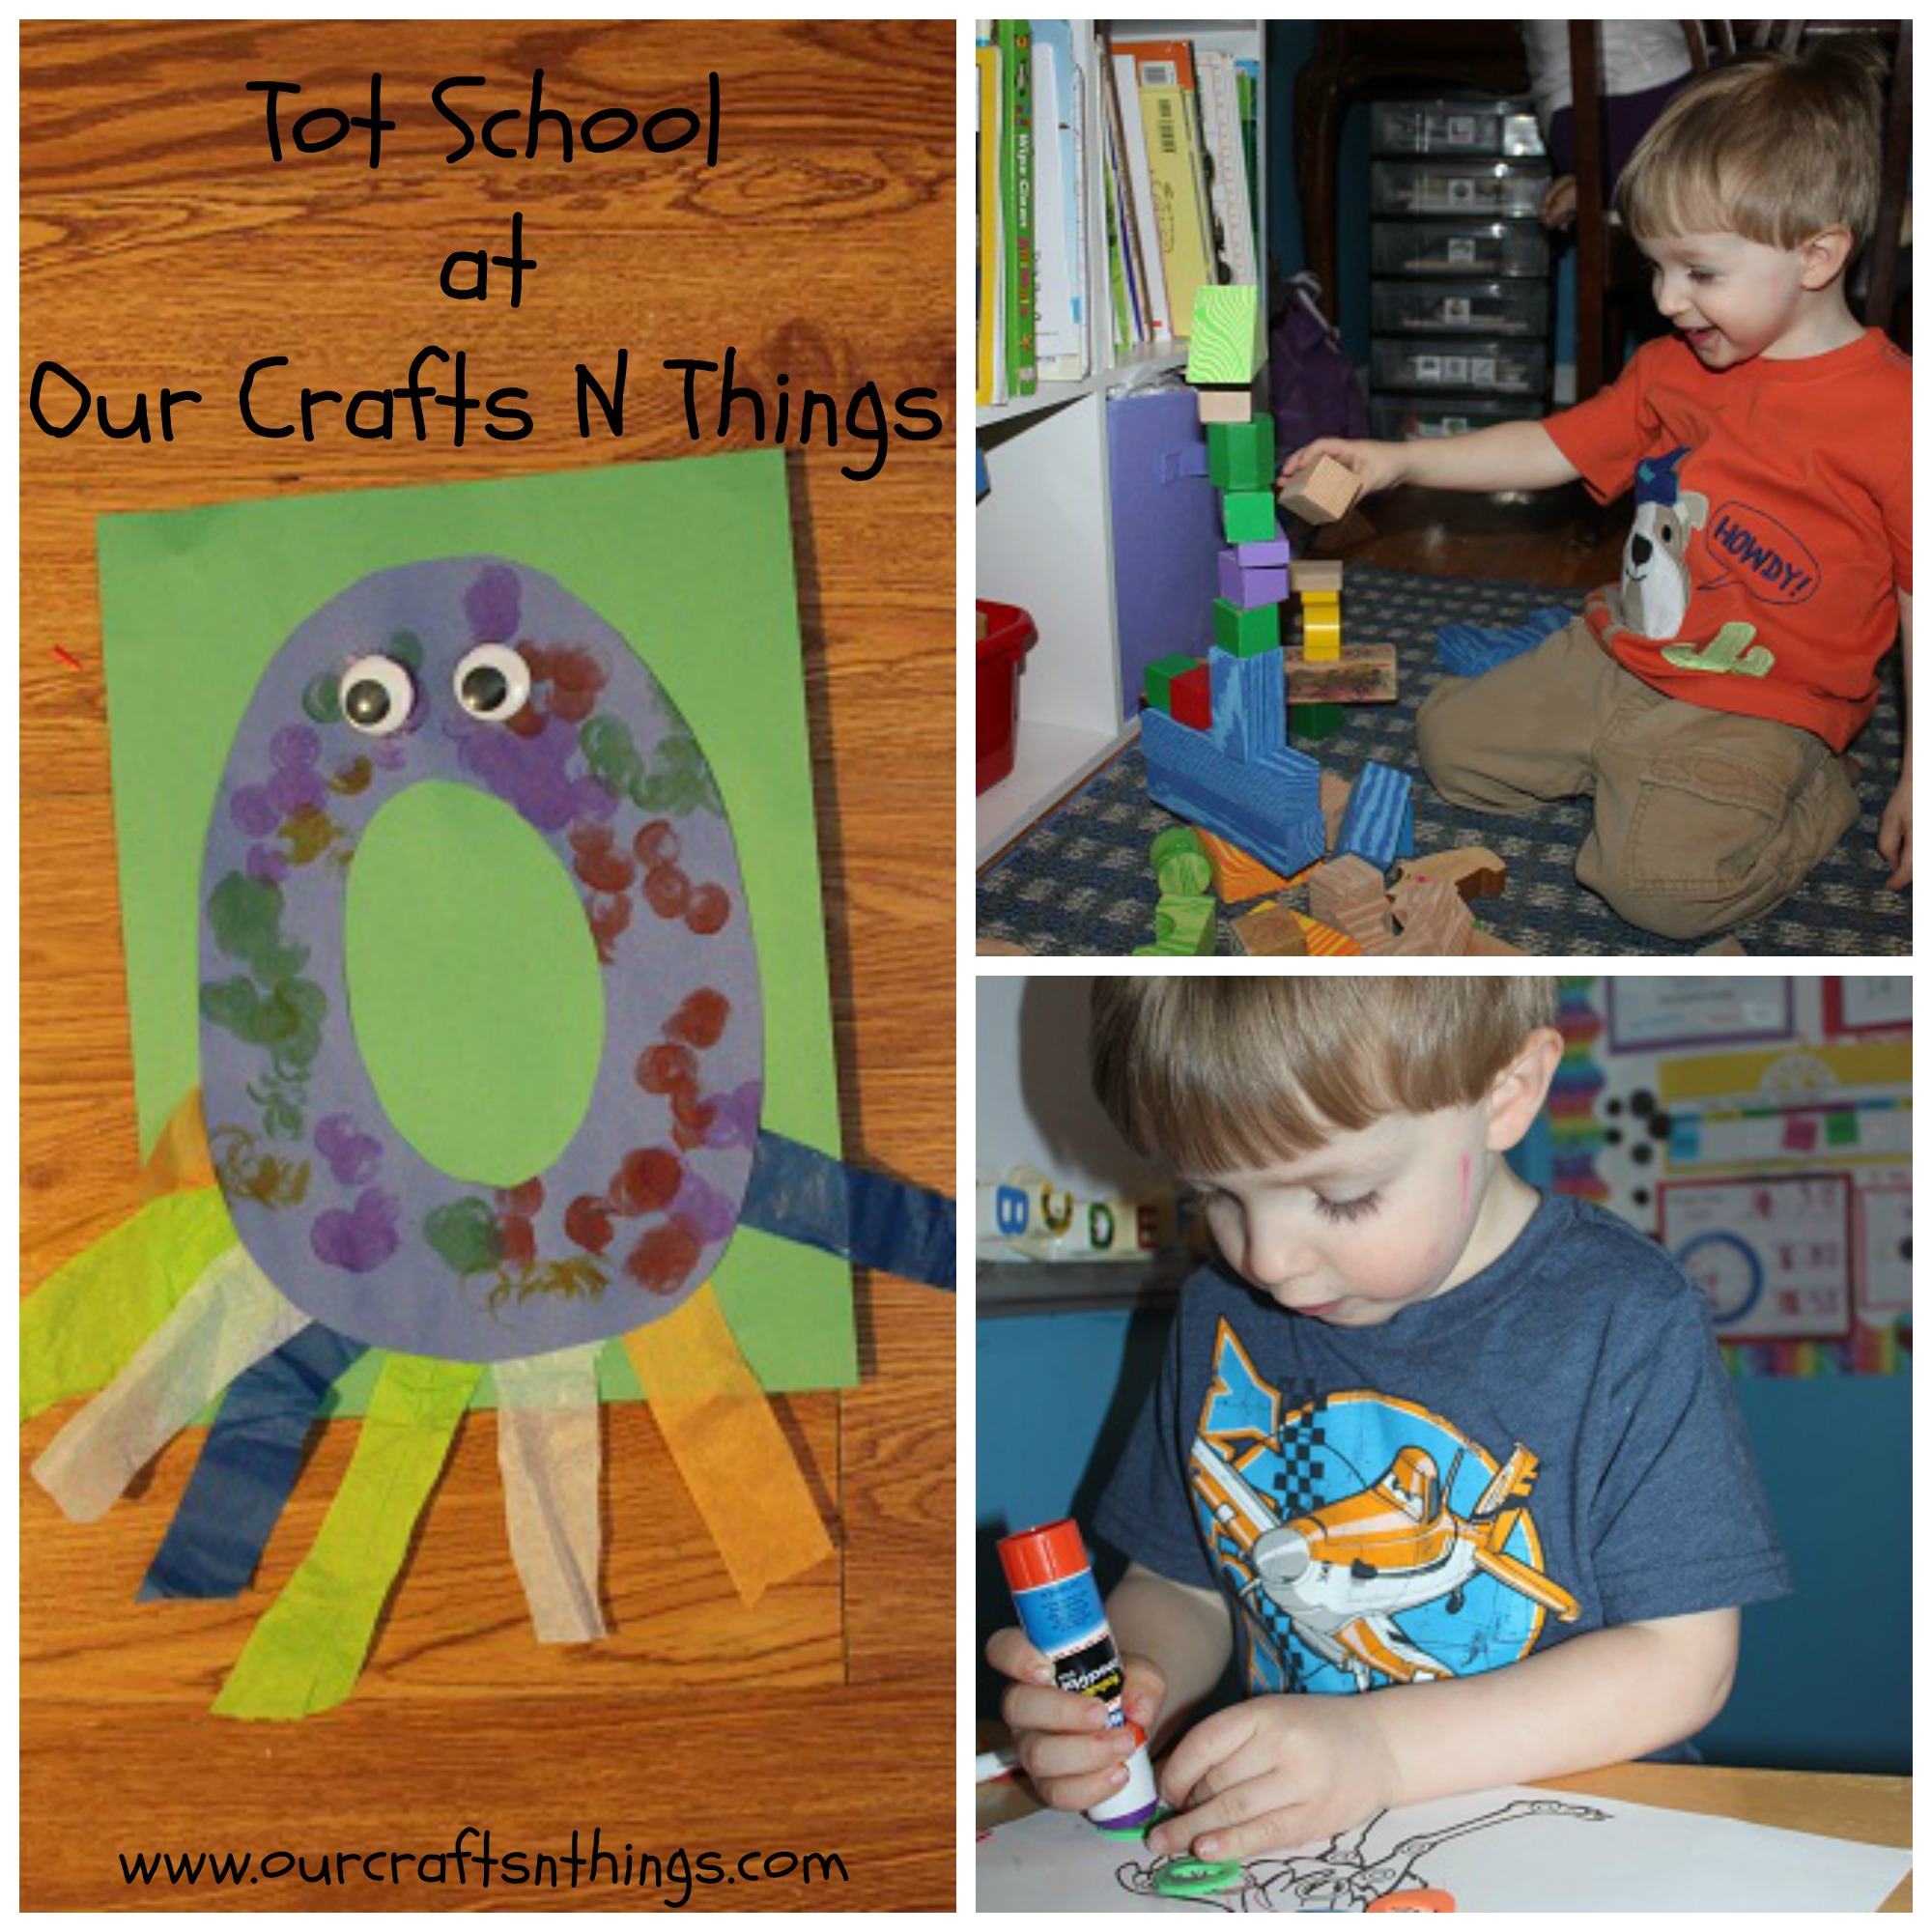 Our Crafts N Things Letter O